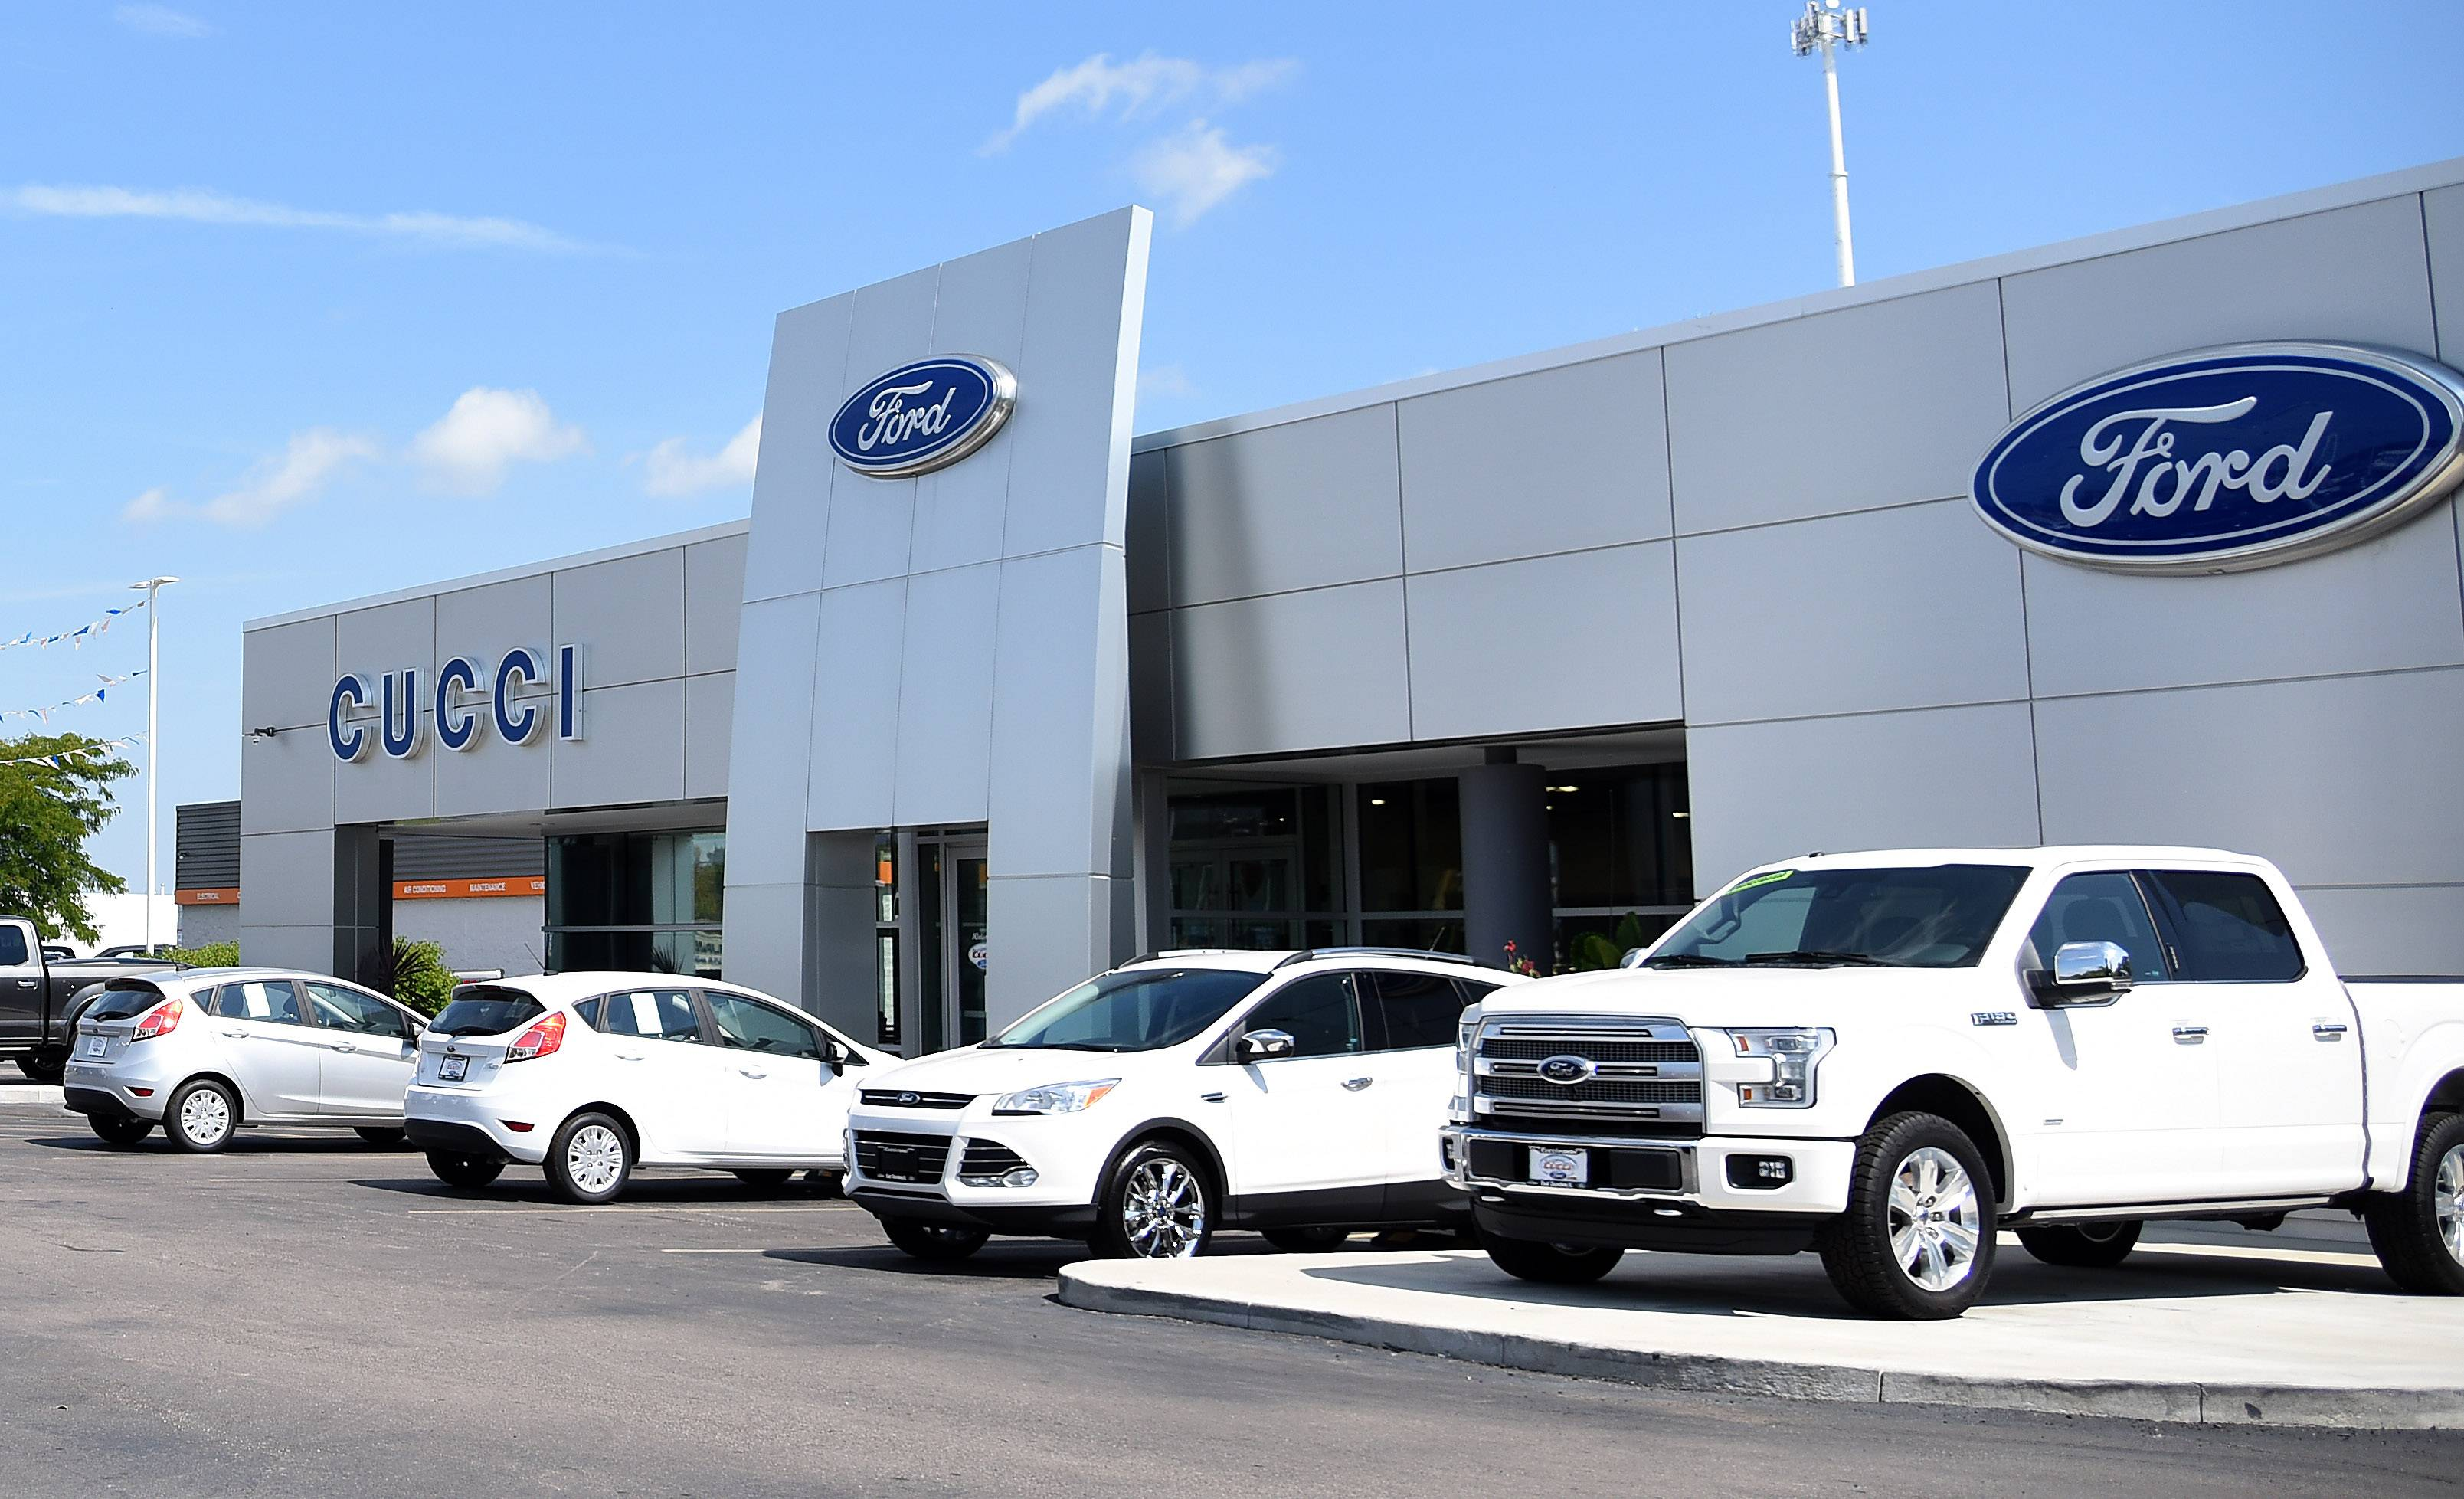 The Cucci Ford automobile dealership at 800 Dundee Ave. East Dundee will receive & East Dundee gives tax incentives to auto dealer markmcfarlin.com